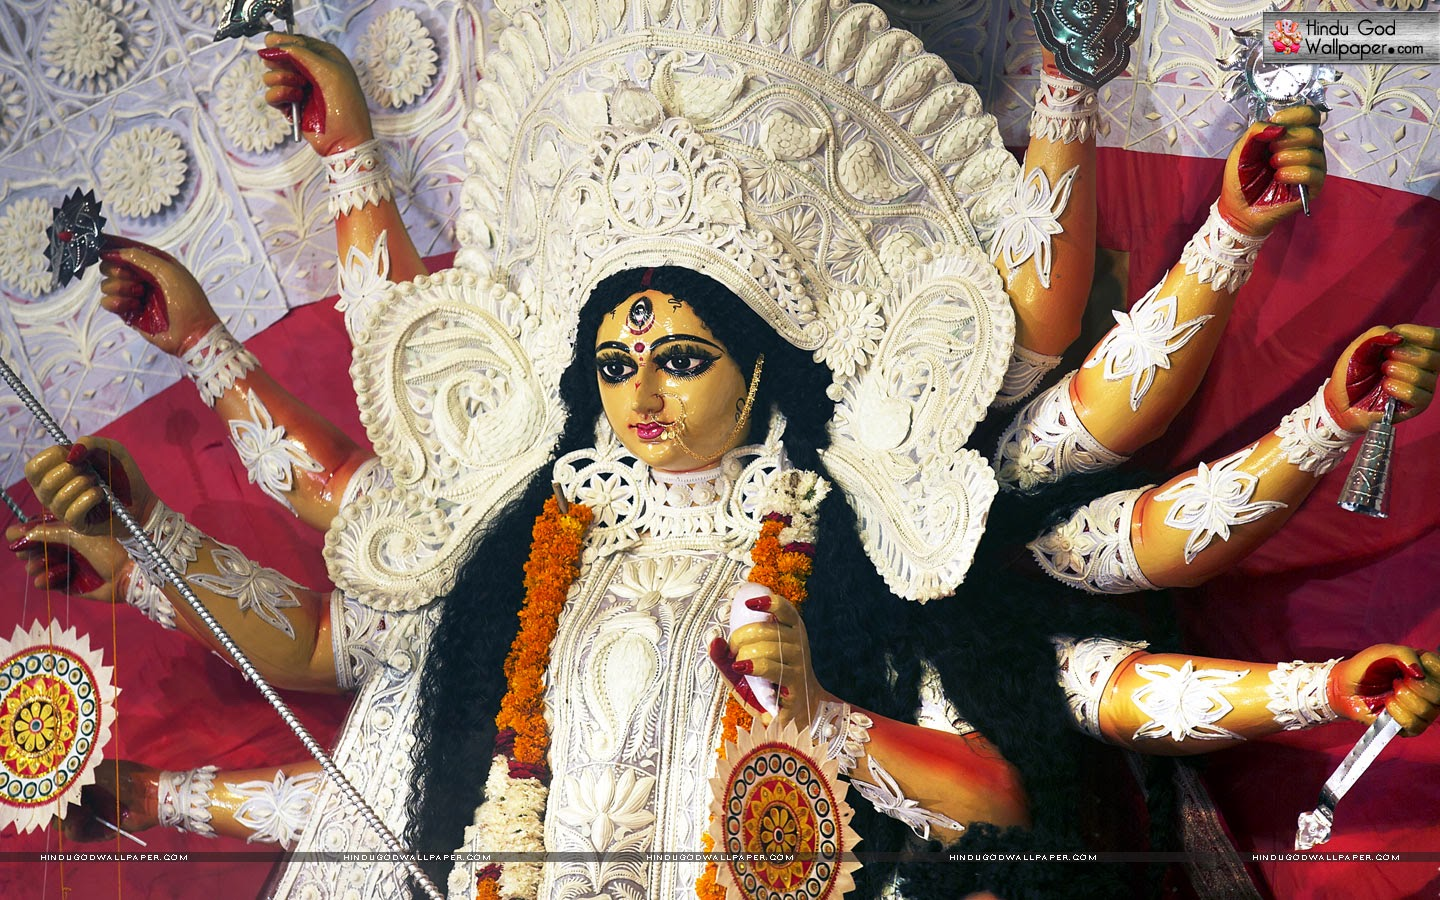 Durga Puja Hd Wallpaper: Maa Durga Wallpapers, Images & Pictures Free Download